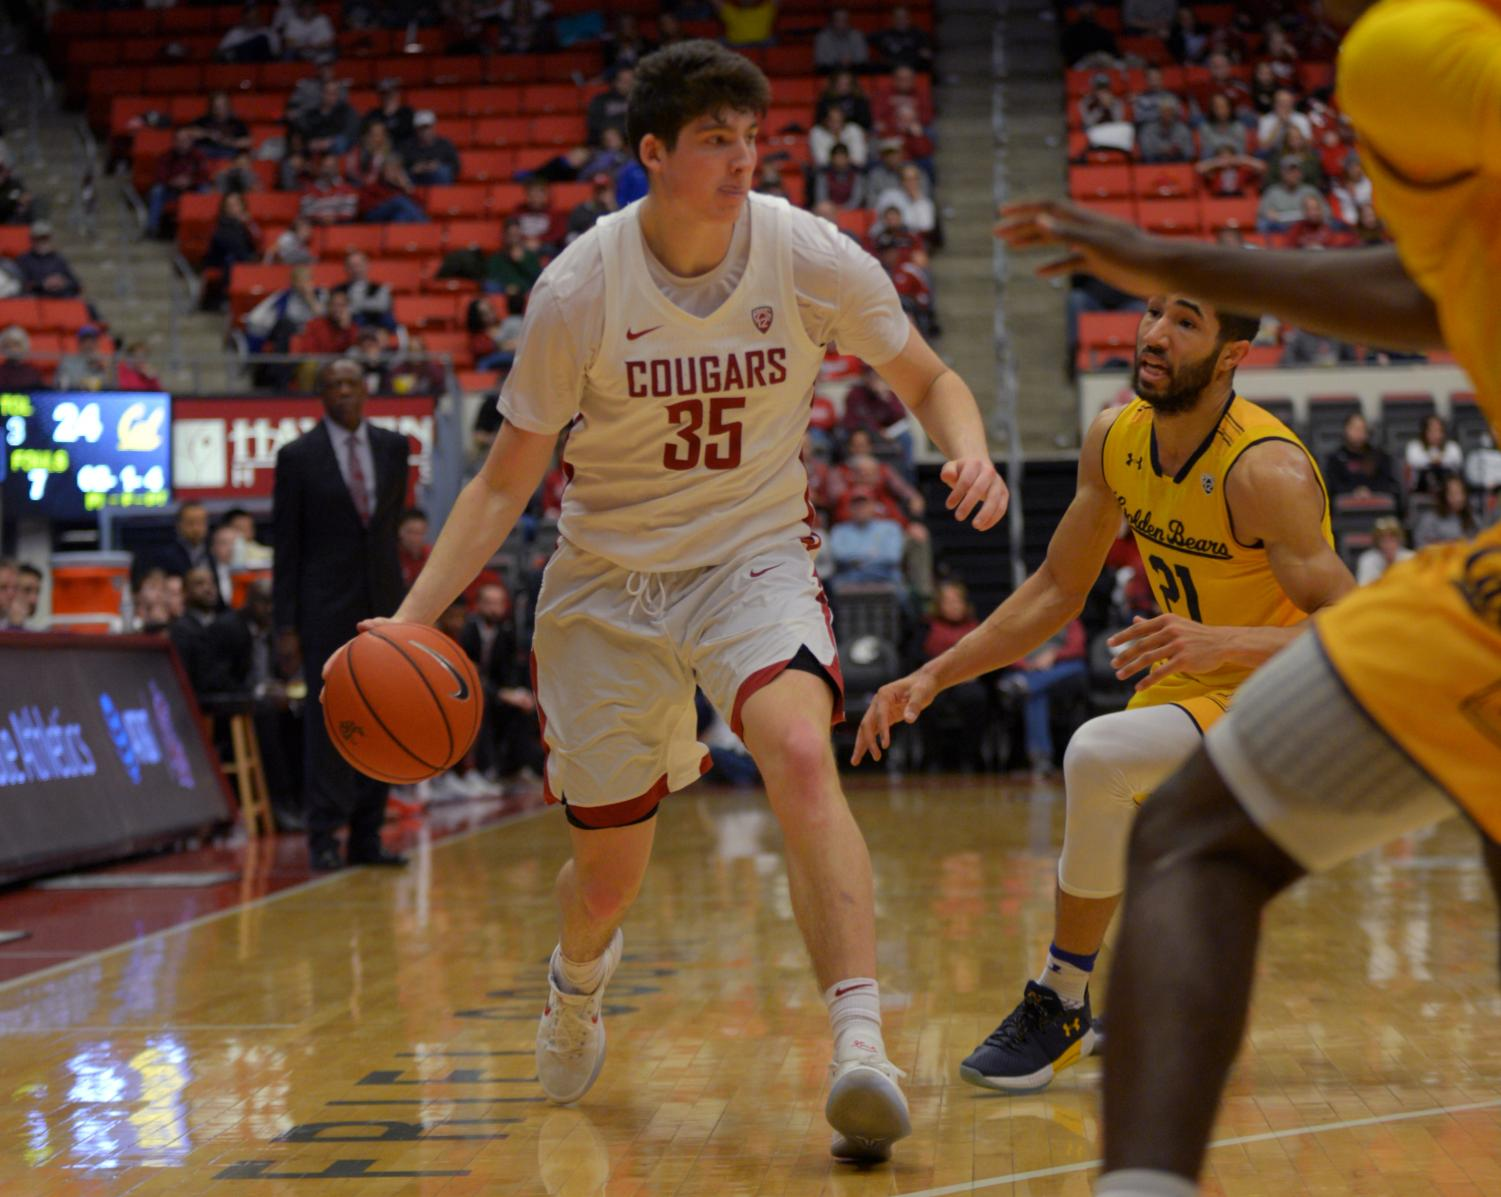 Carter Skaggs plays in a game against the California Golden Bears Jan. 13 at the Beasley Coliseum.